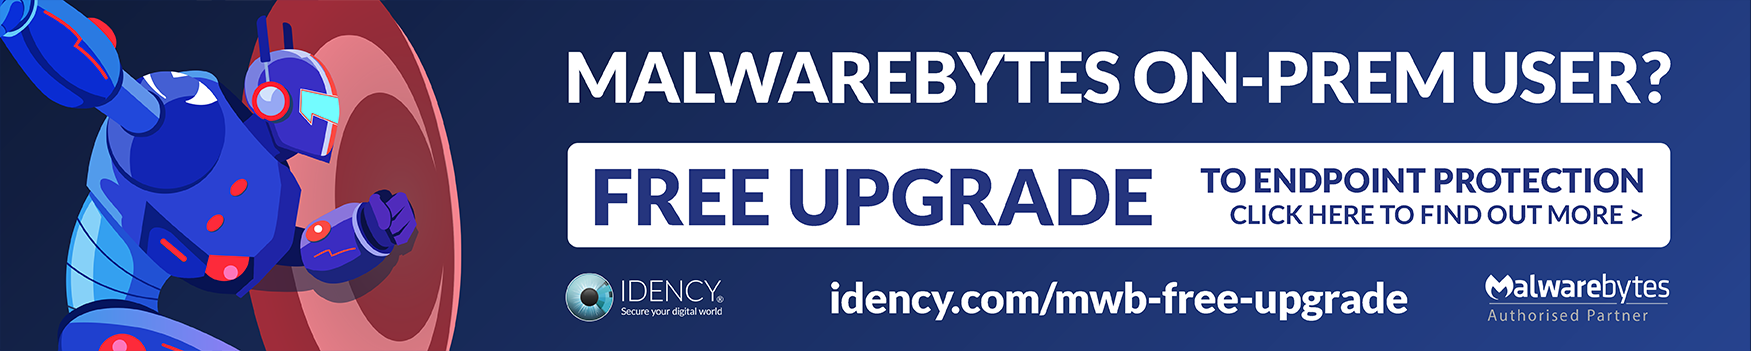 idency malwarebytes endpoint security to endpoint protection upgrade banner wide